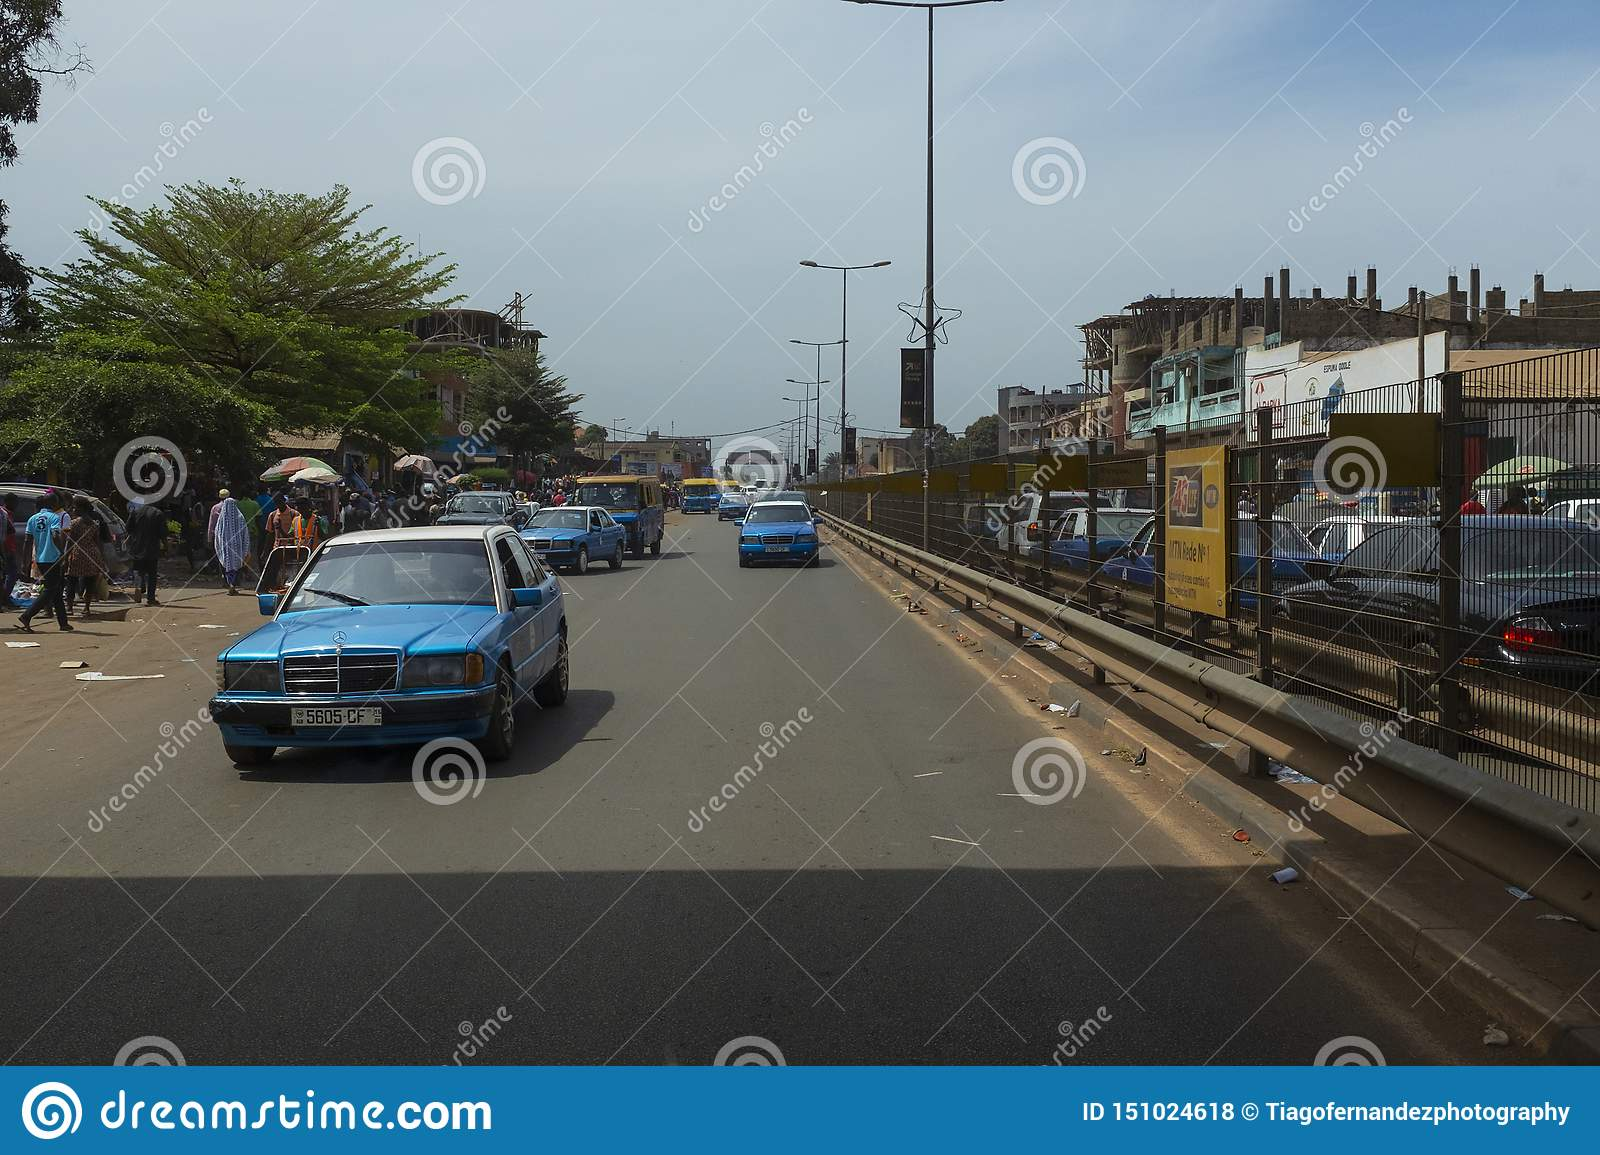 Street scene in the city of Bissau with cars in an avenue near the Bandim Market, in Guinea-Bissau